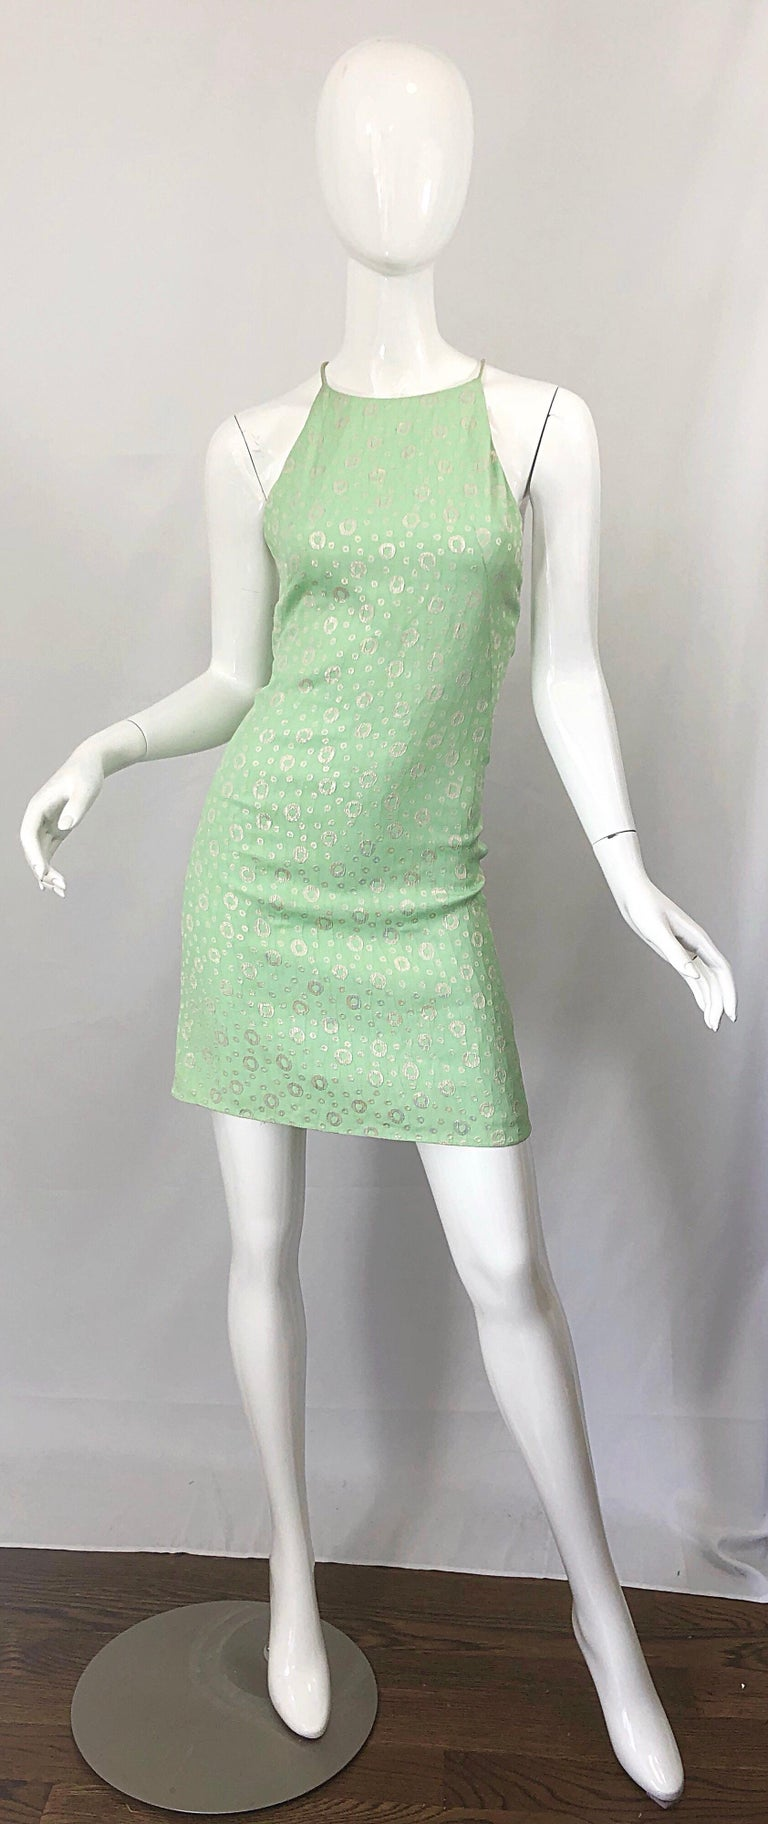 NWT 1990s James Purcell Size 4 / 6 Mint Sherbet Green Gold Racerback Silk Dress For Sale 11